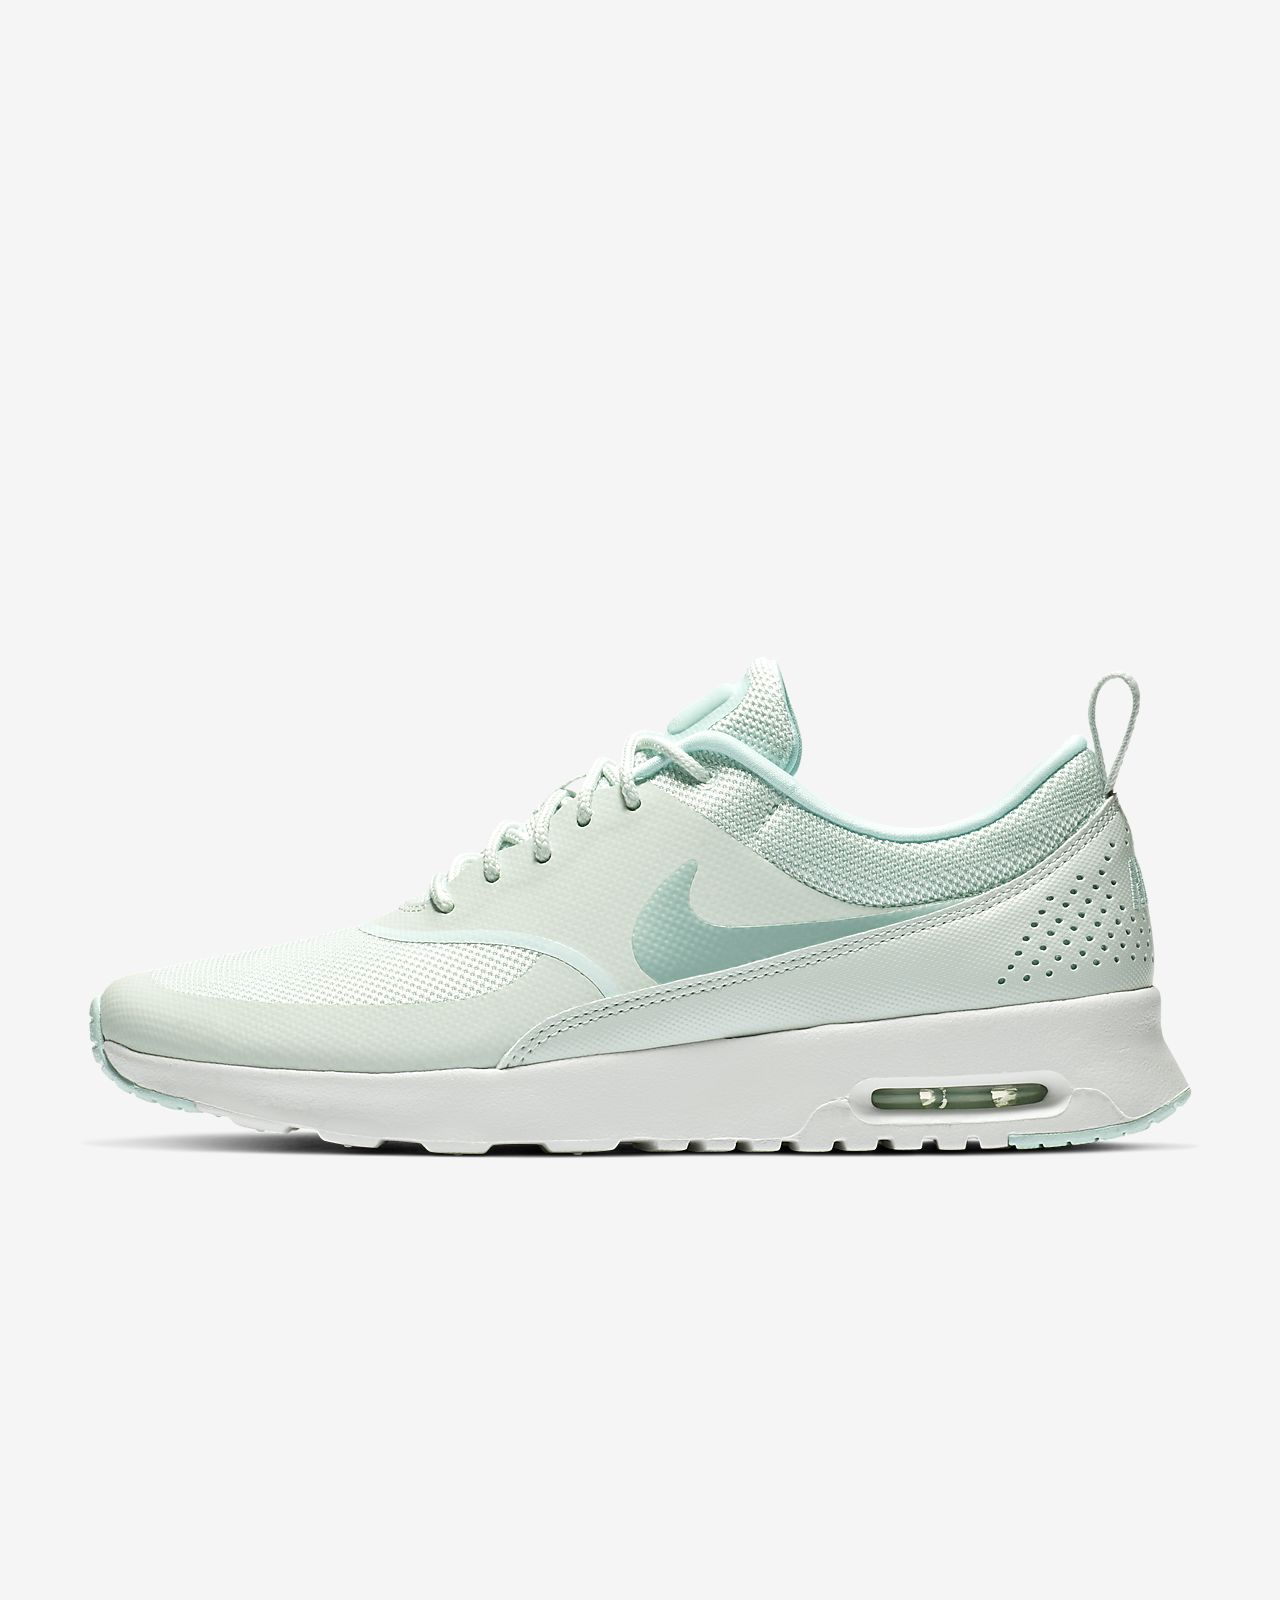 reputable site 4972e 2cb06 ... Nike Air Max Thea Women s Shoe